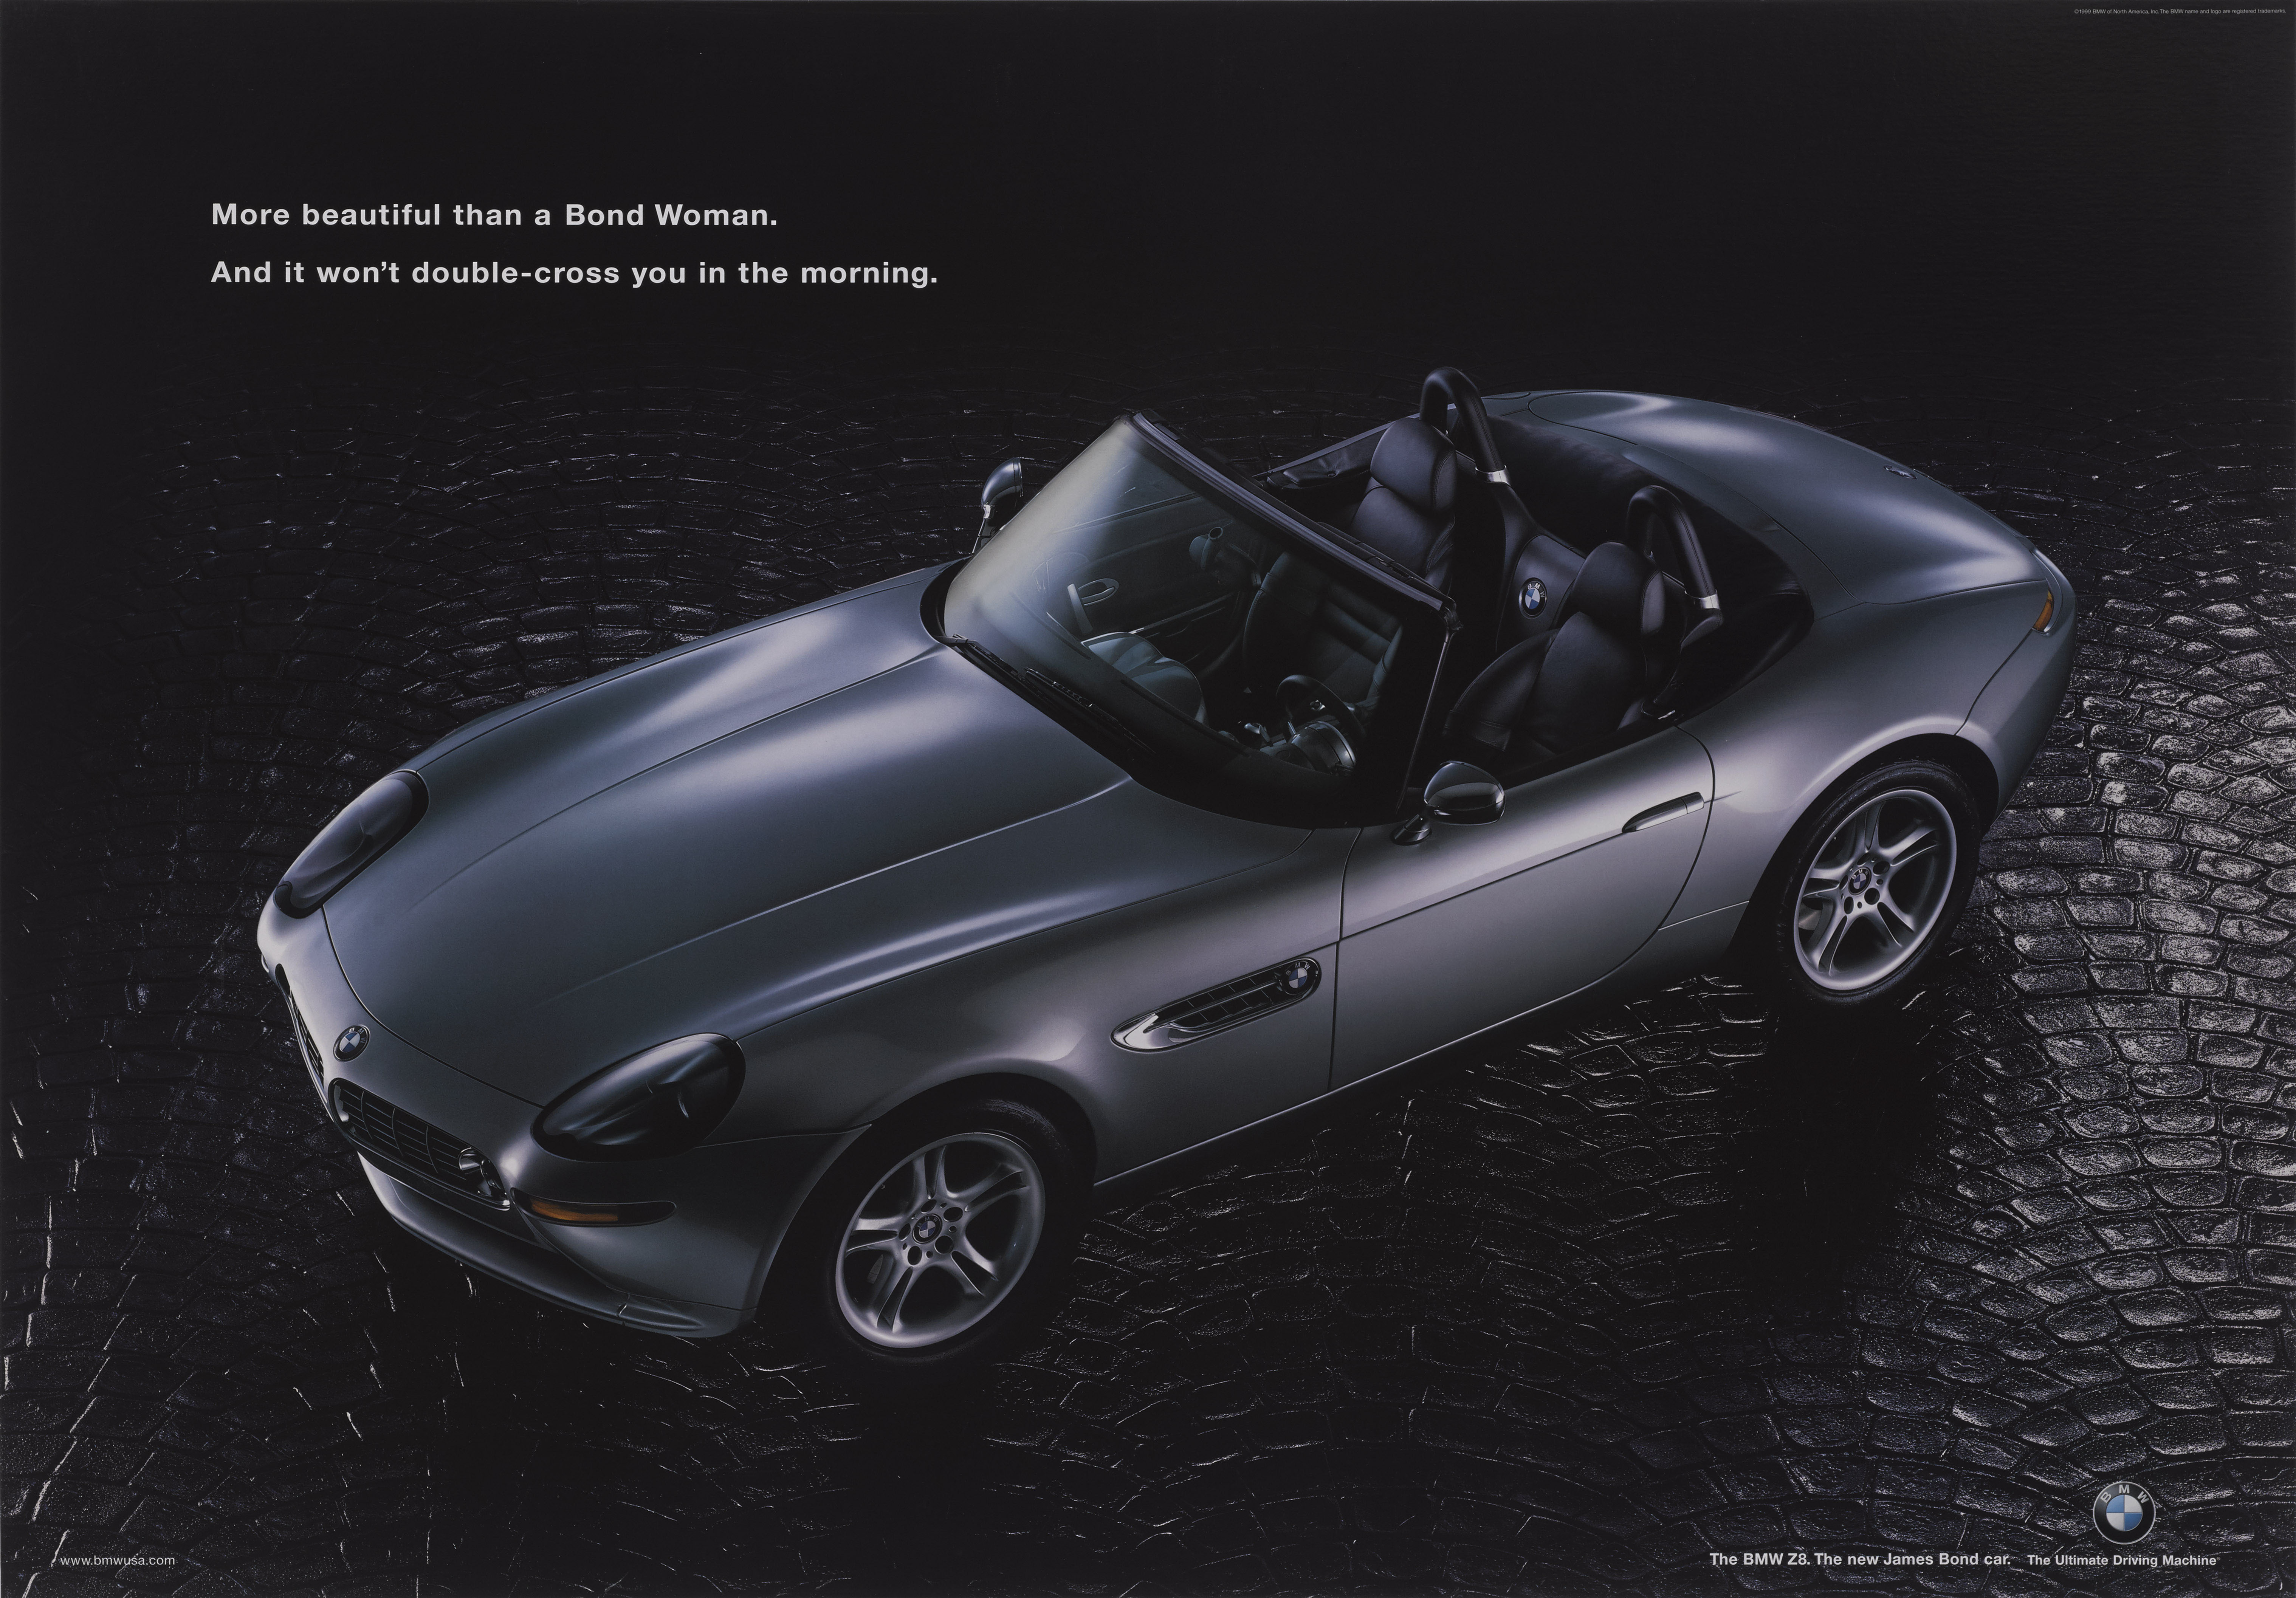 THE WORLD IS NOT ENOUGH (1999) POSTER, BRITISH, TIE-IN WITH BMW